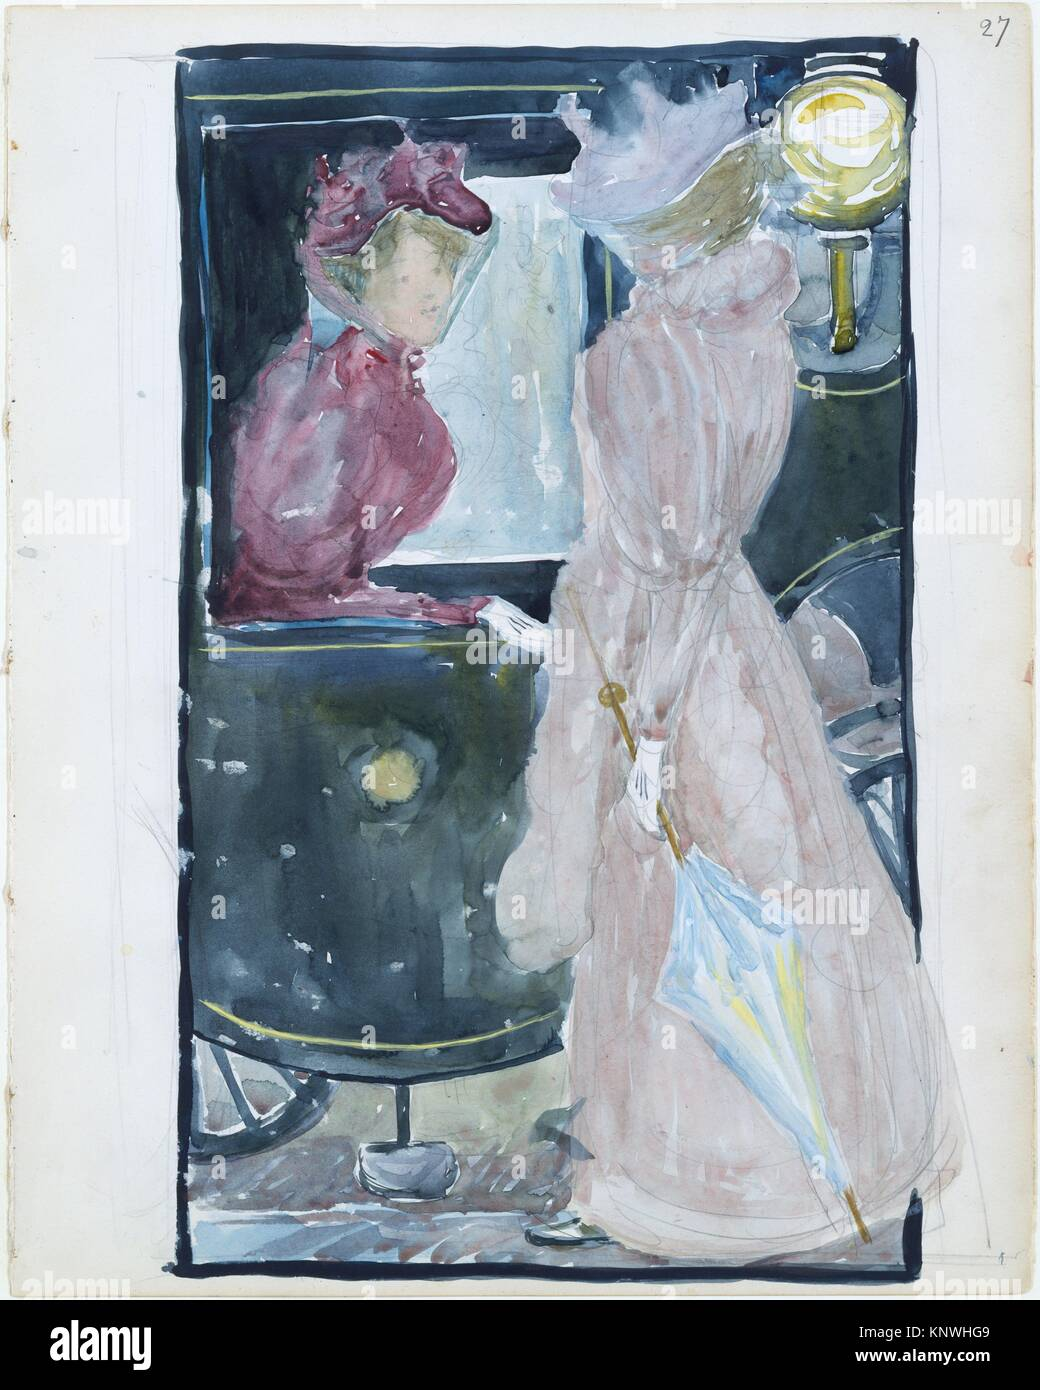 Large Boston Public Garden Sketchbook: Two women stopping to converse with an acquaintance riding in a carriage. - Stock Image